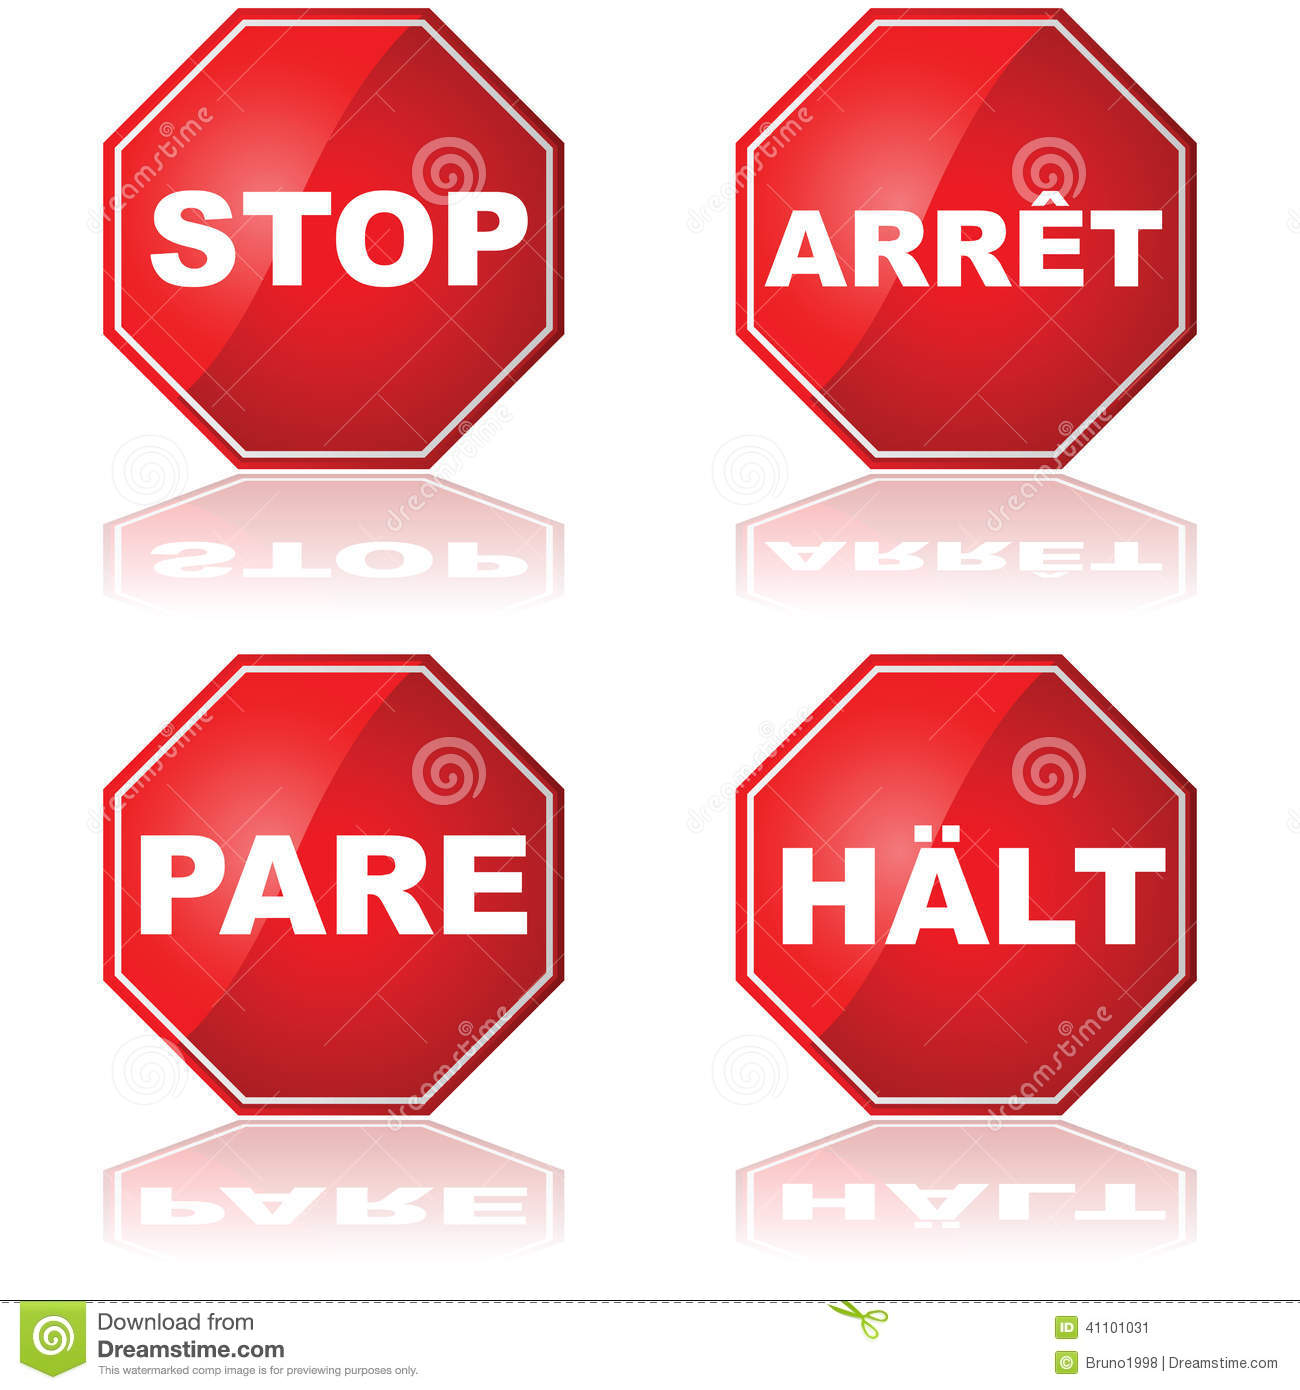 how to say stop in german